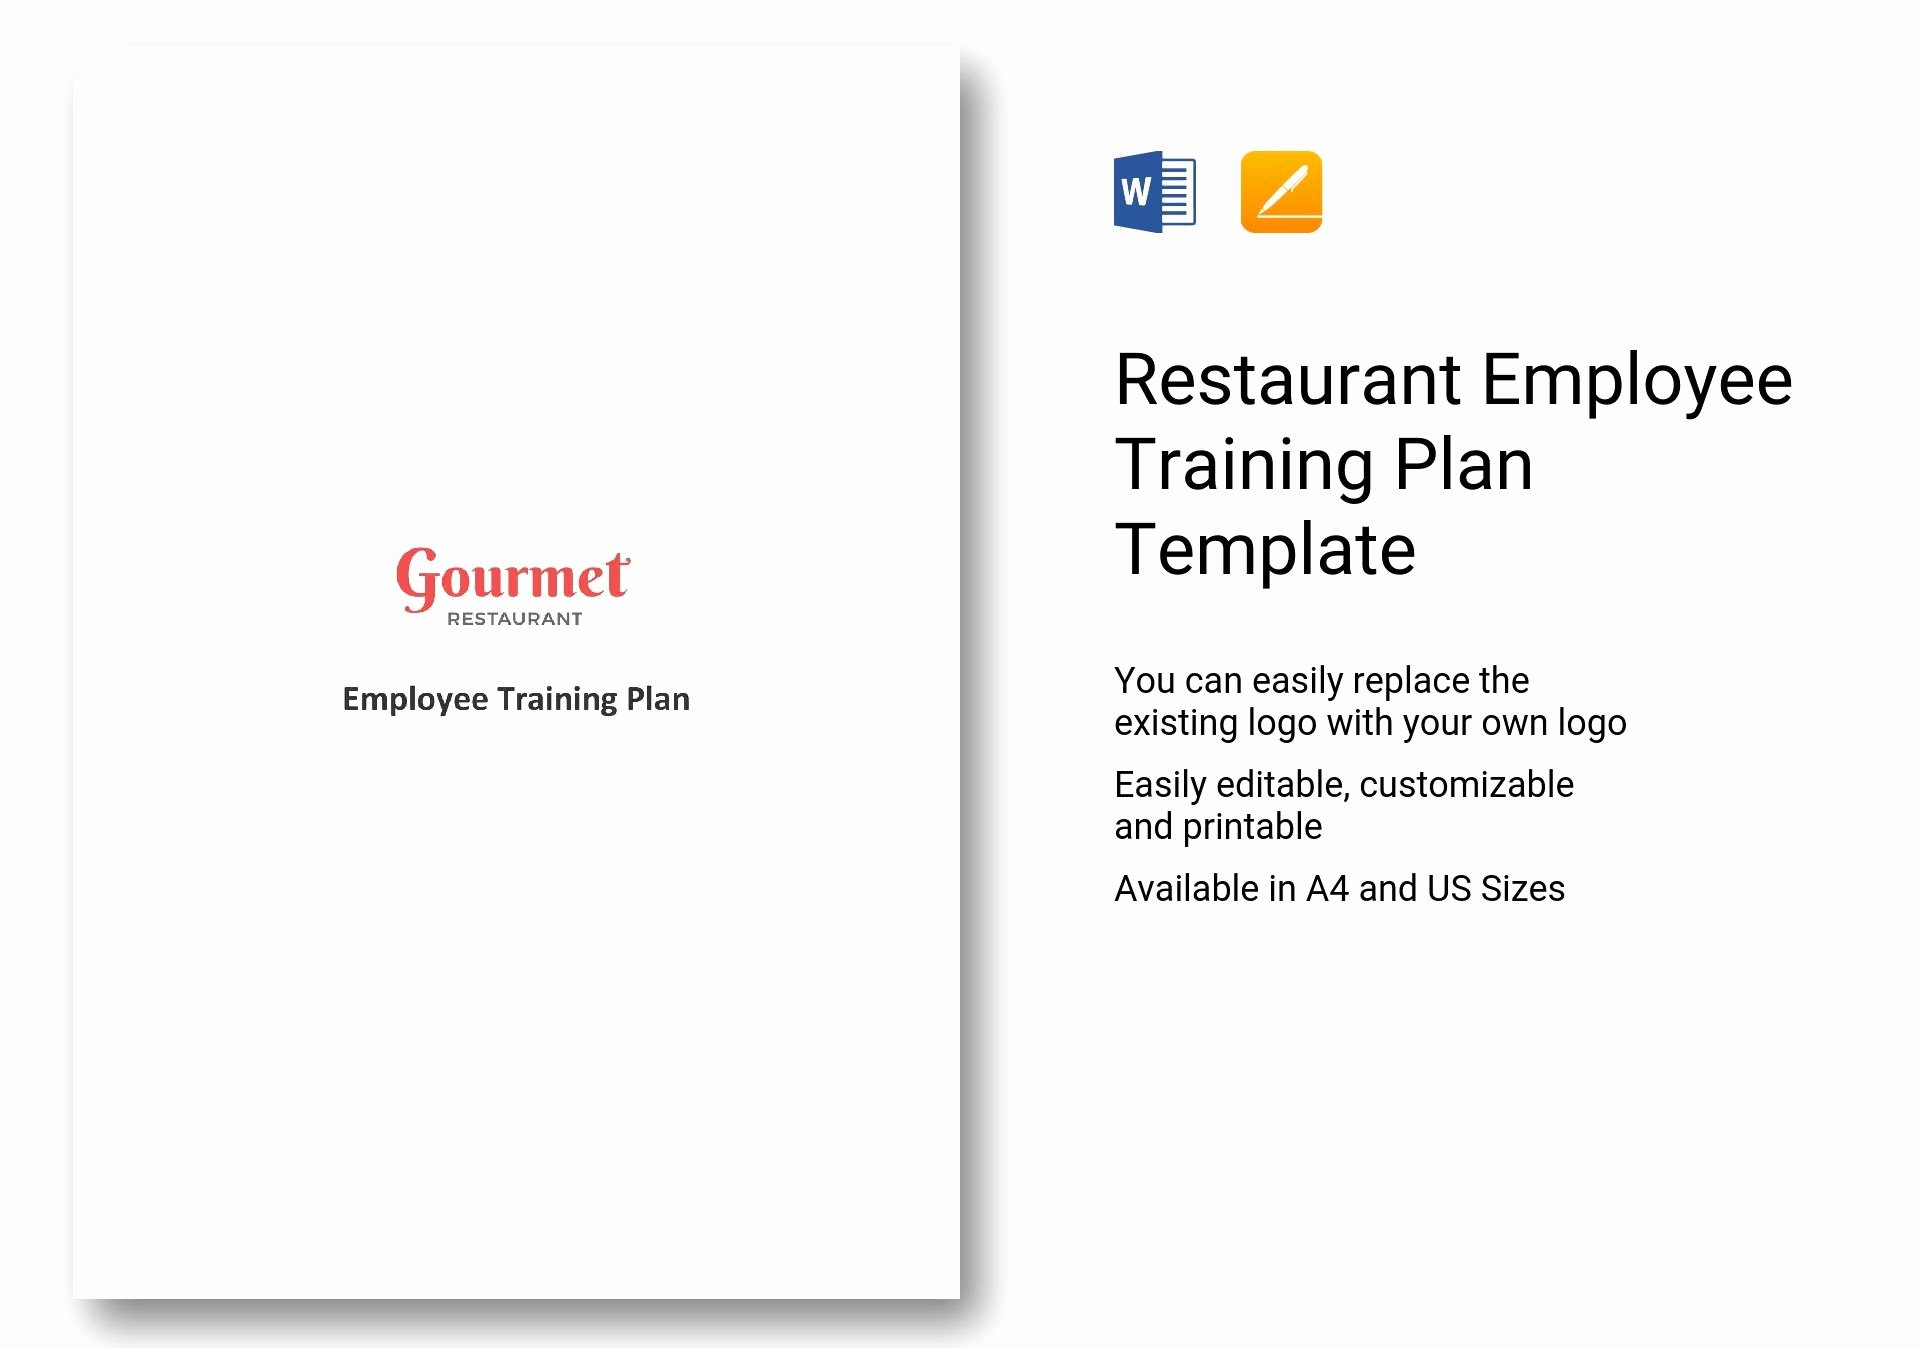 Employee Training Plan Template Word Beautiful Restaurant Employee Training Plan Template In Word Apple